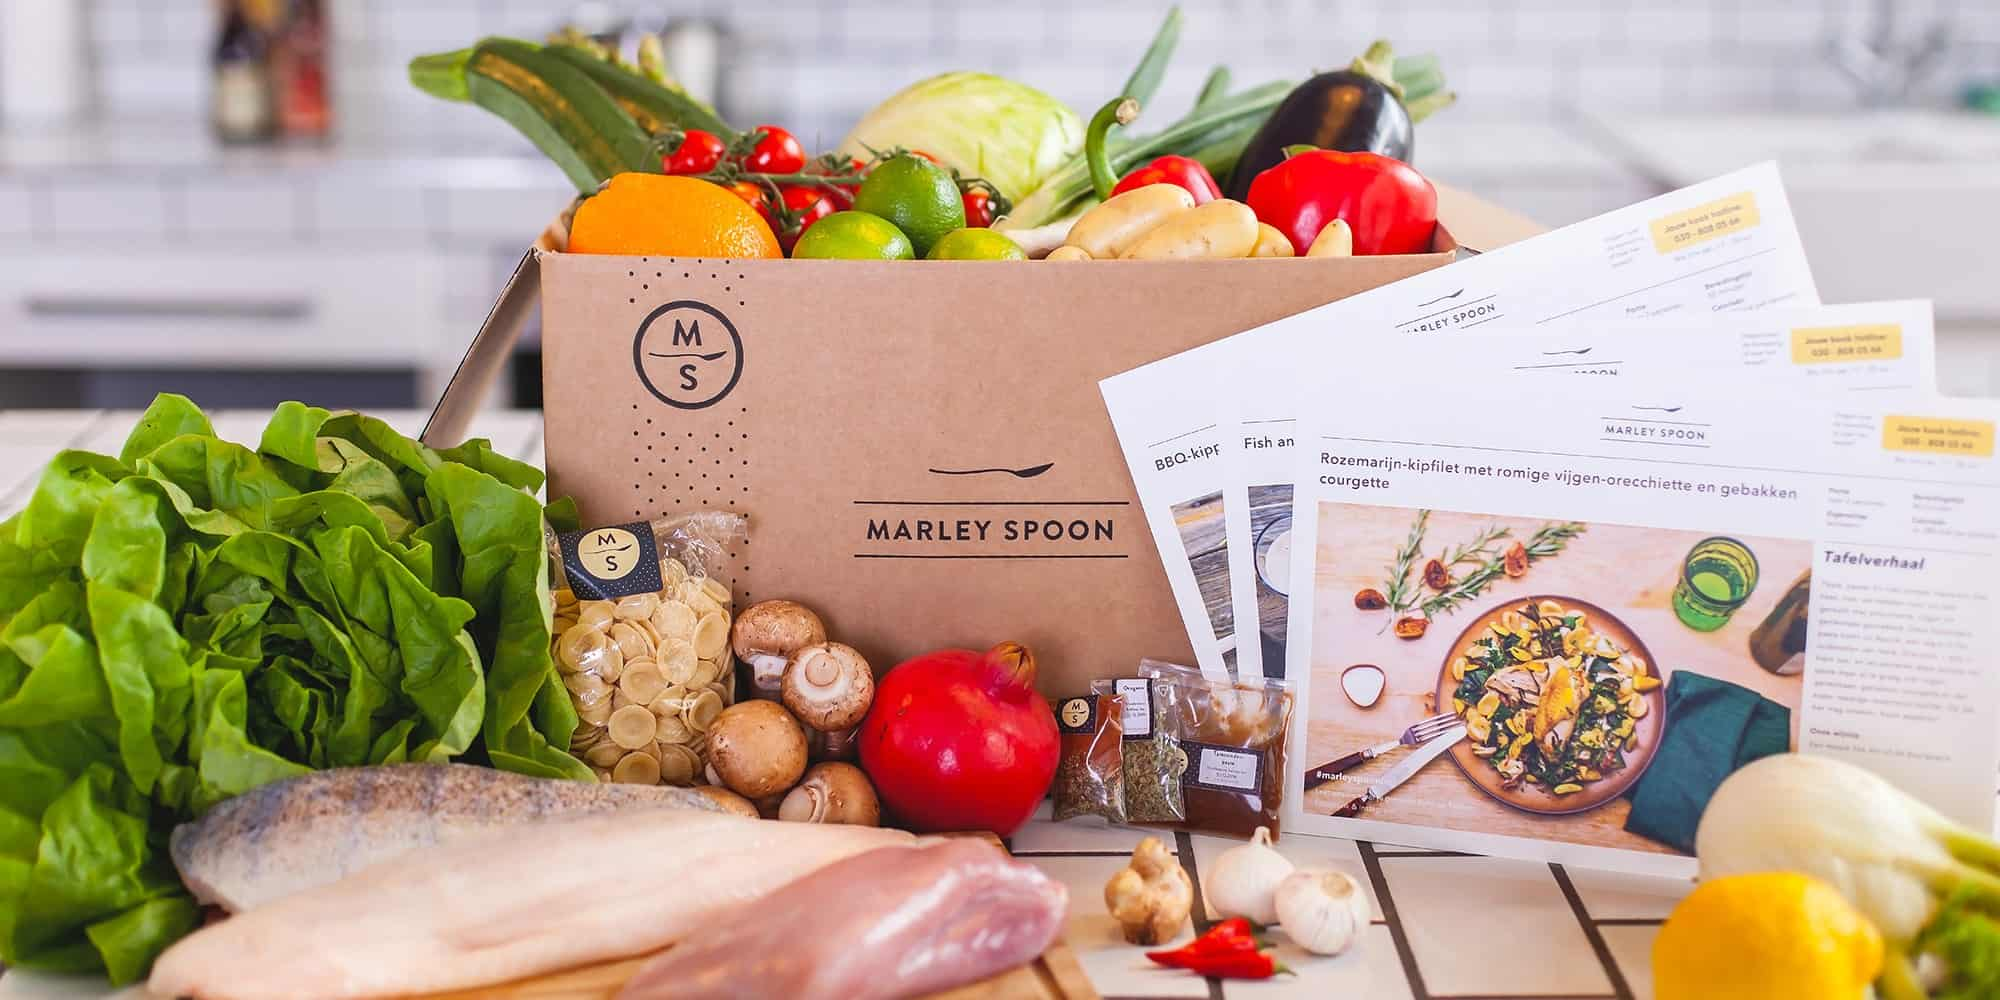 Marley Spoon Full Meal Subscription Box